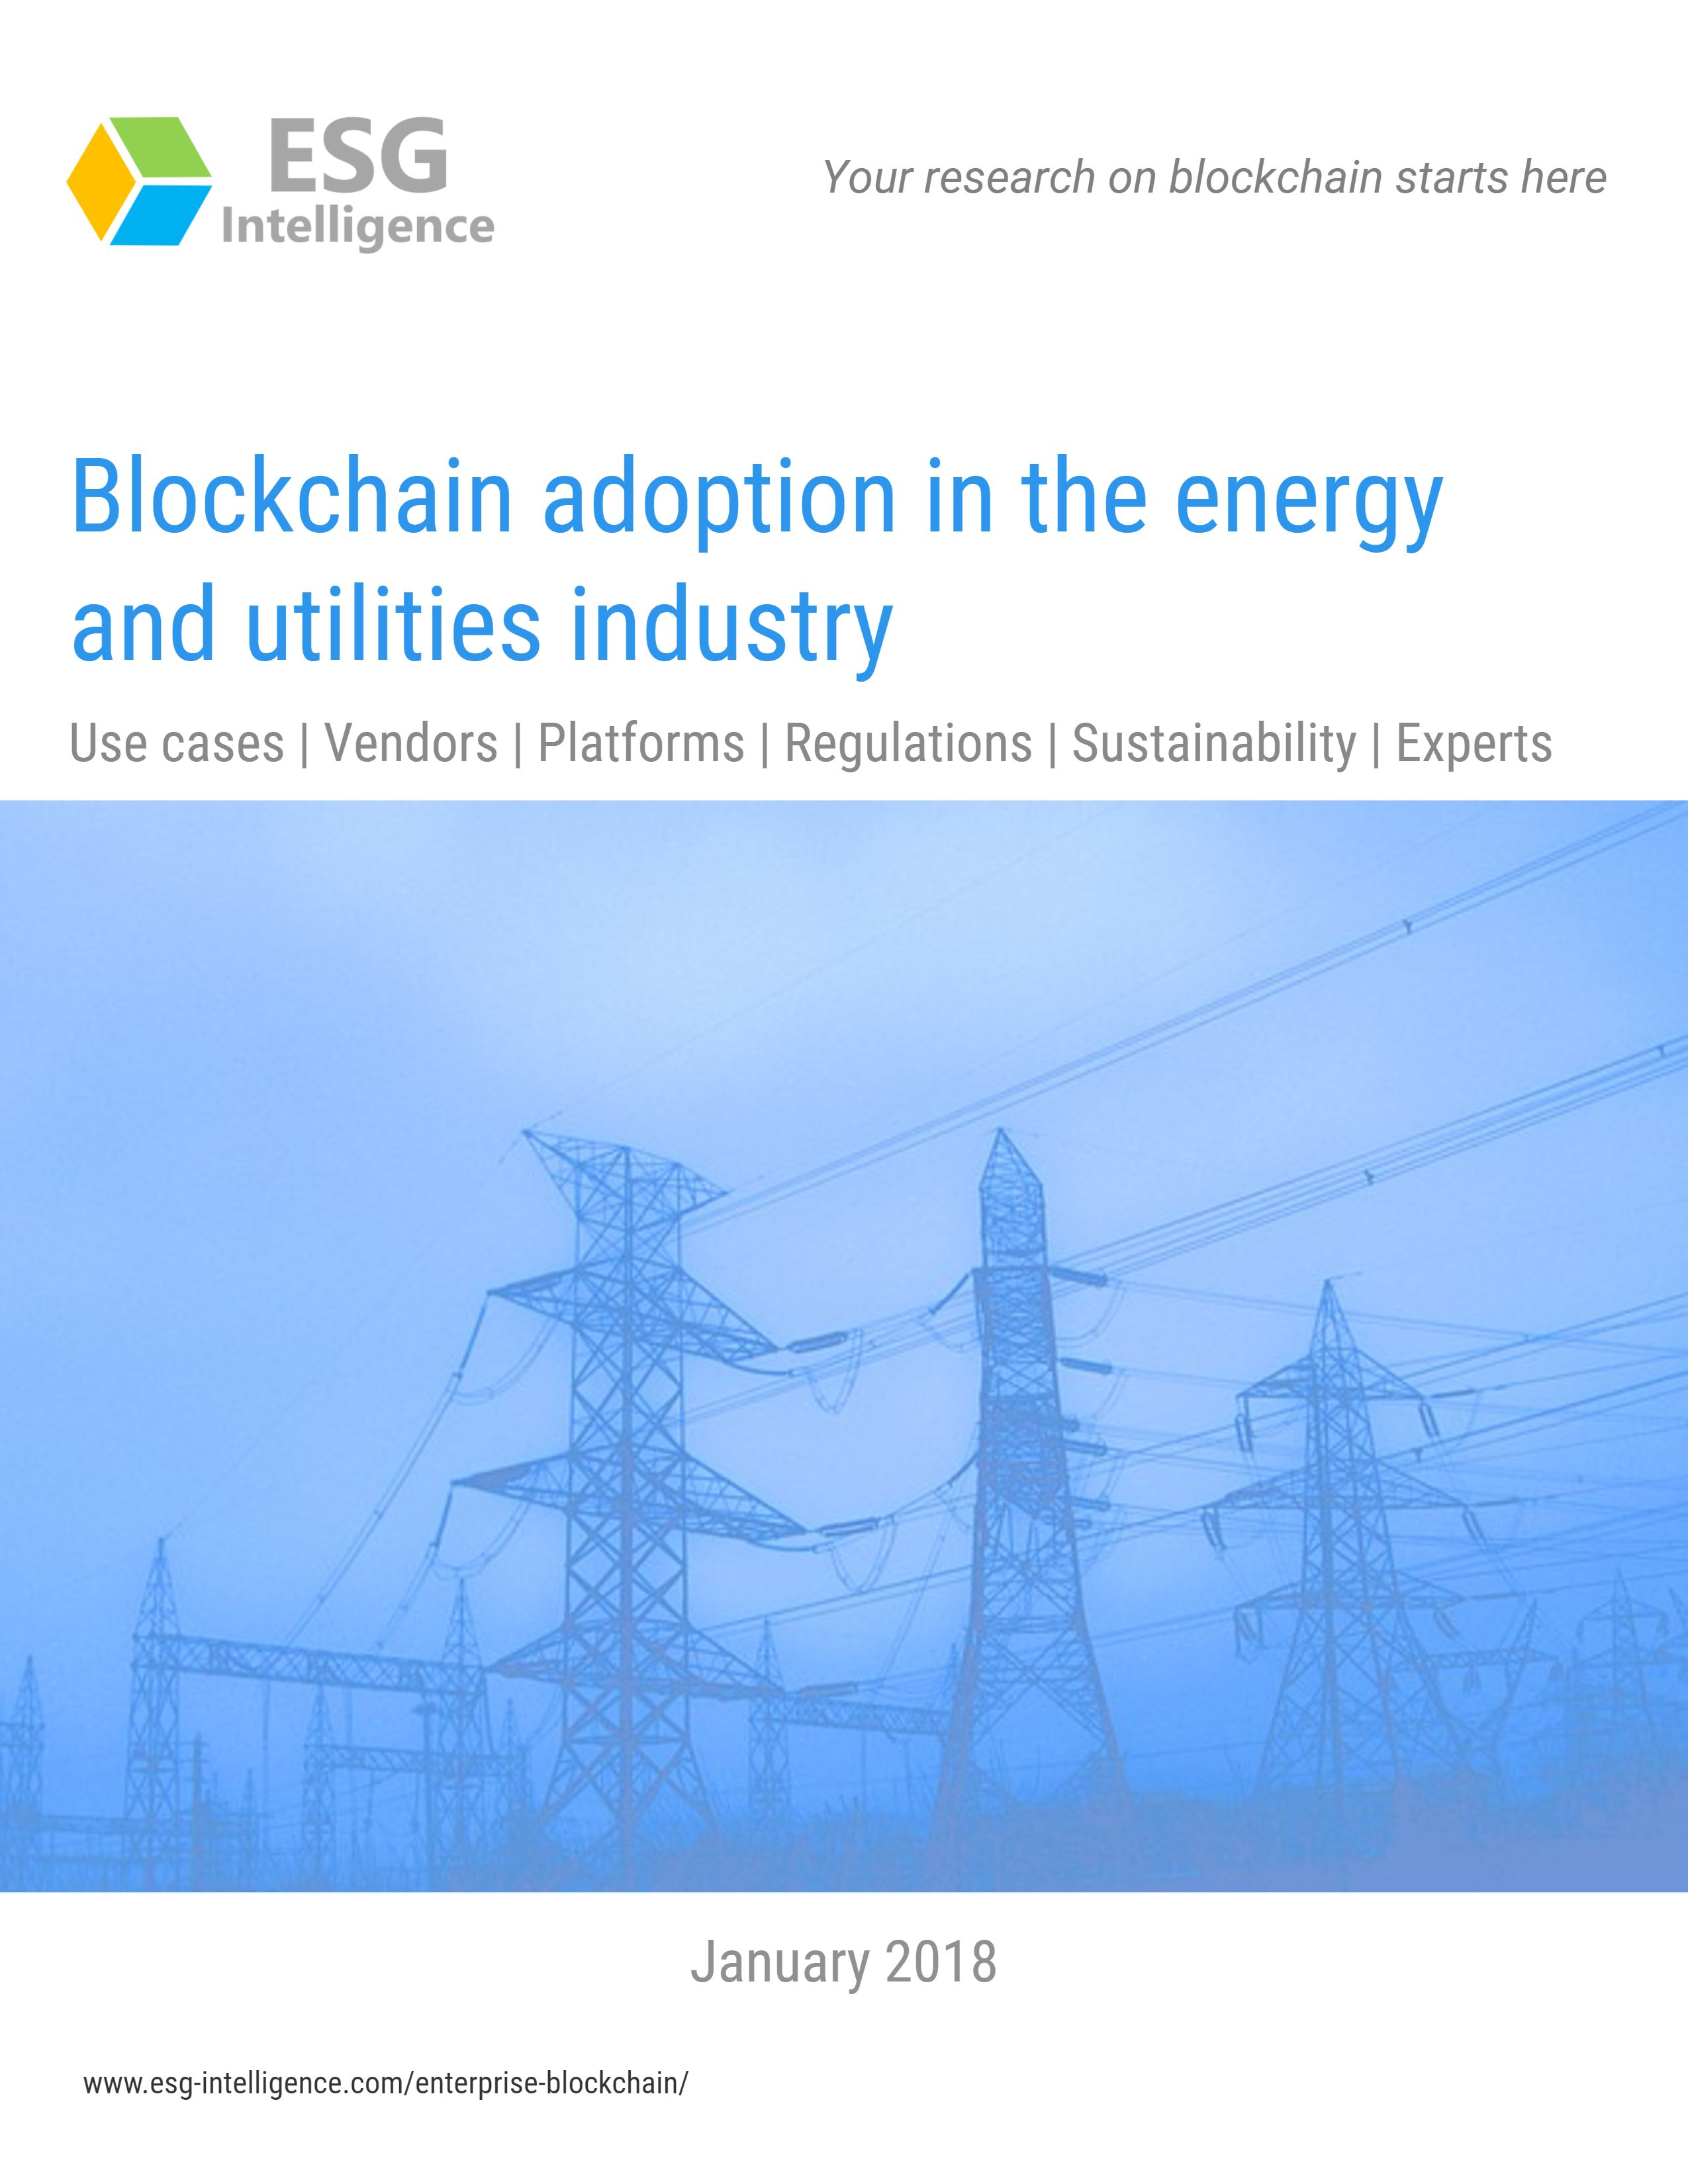 Blockchain adoption in the energy and utilities industry